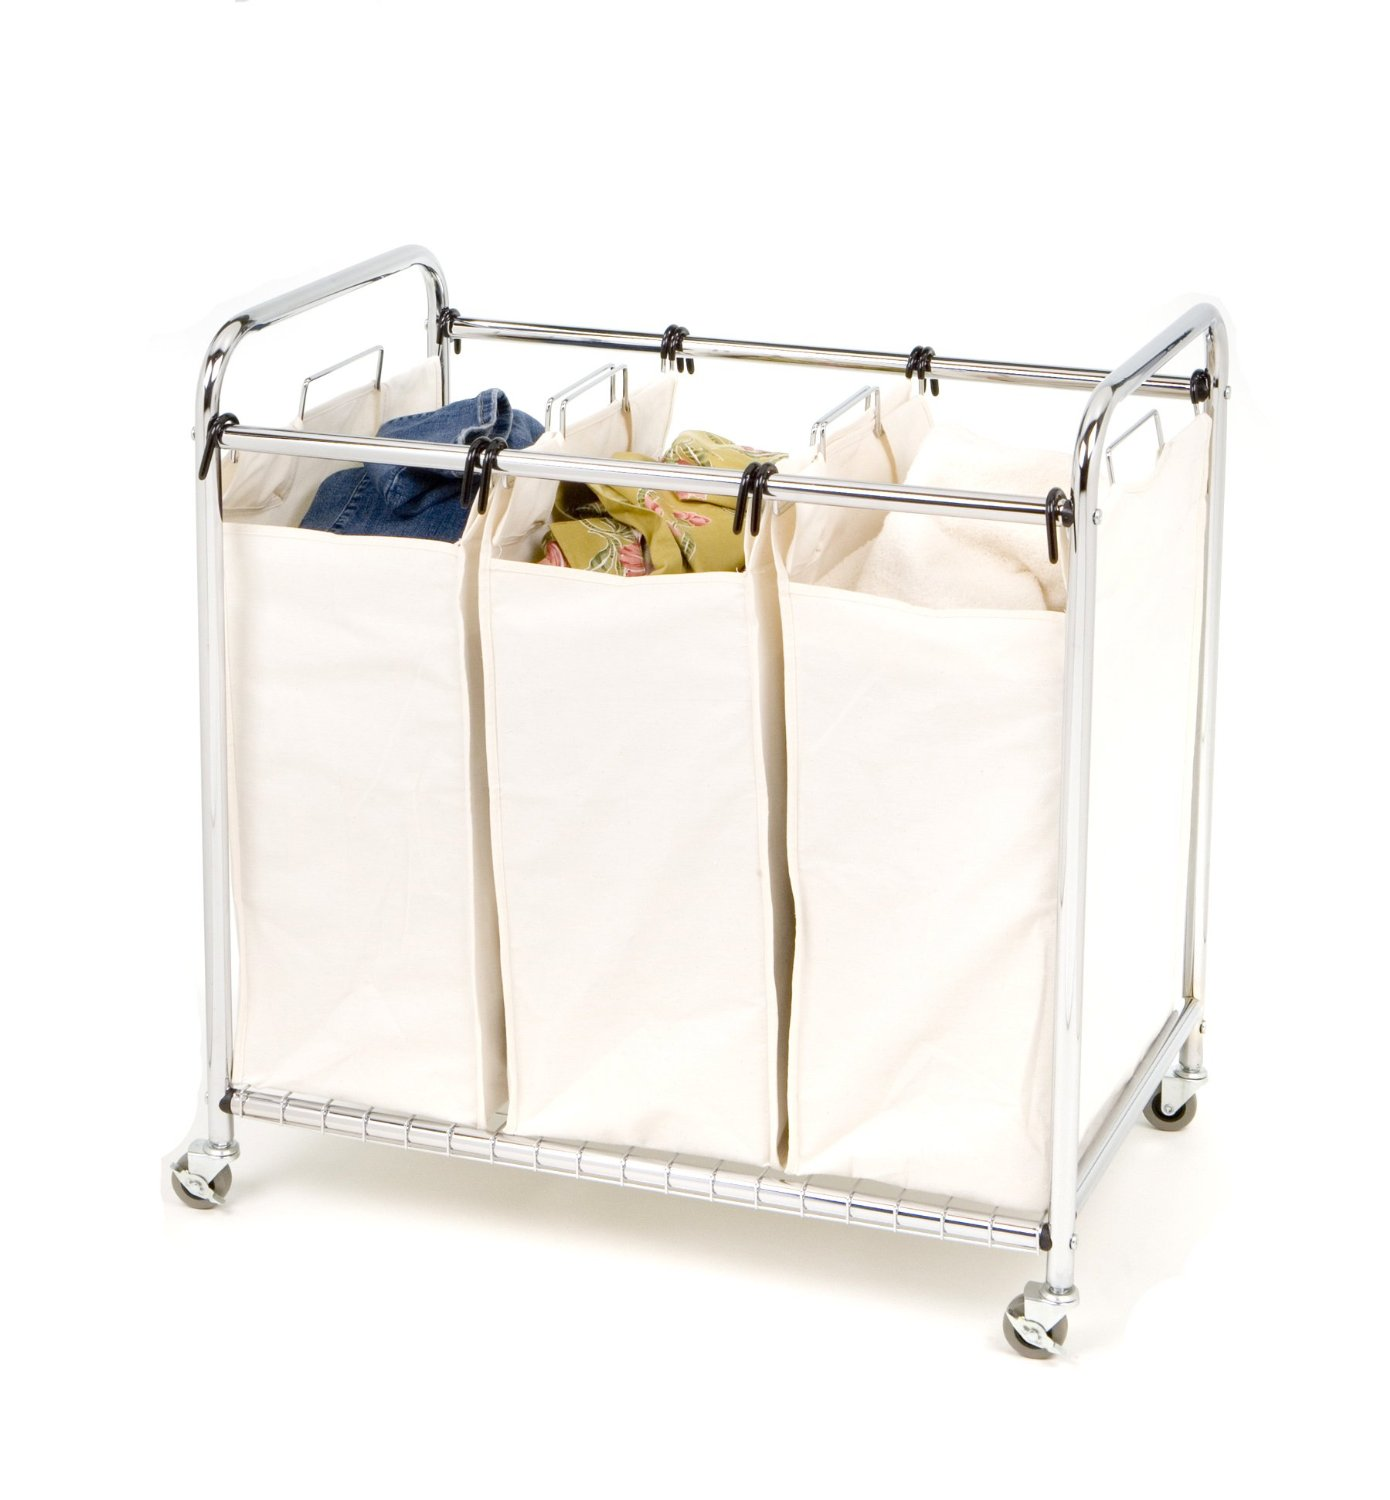 Triple Bin Laundry Basket On Wheels Ideas (Image 7 of 10)